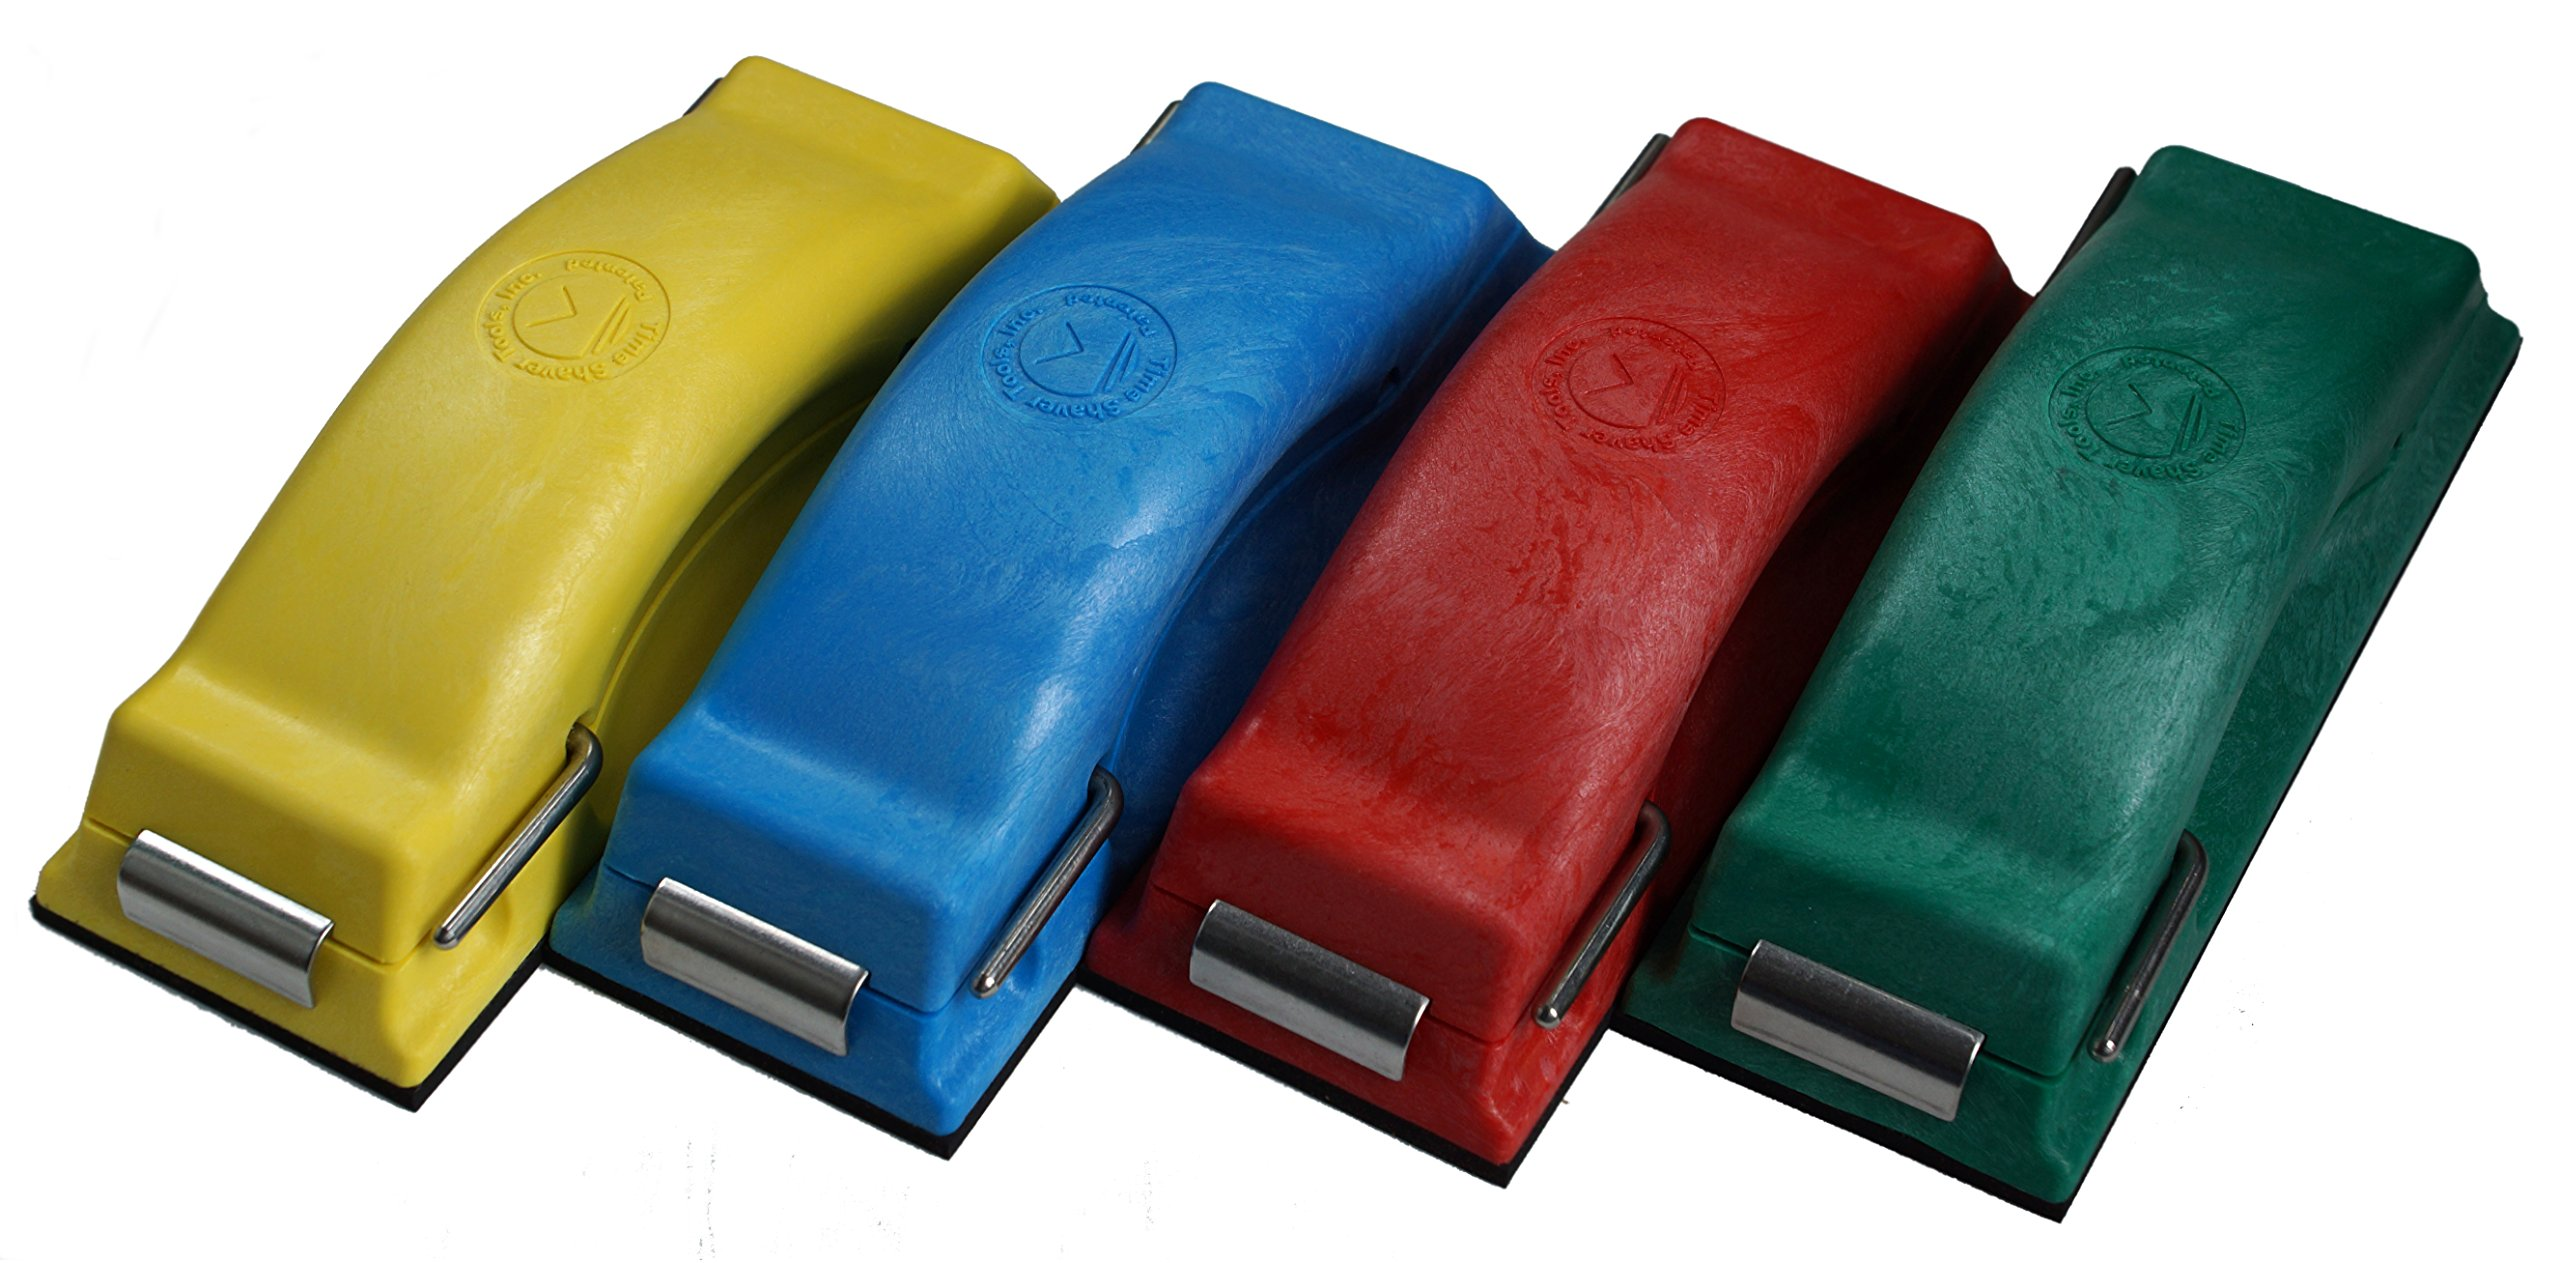 Time Shaver Tools Preppin' Weapon Ergonomic Sanding Block, for Wet and Dry Sanding! Easy to Load, Multi-purpose Plain Paper Sander! Set of 4 Color Coded Hand Sanders in Yellow, Blue, Green and Red.